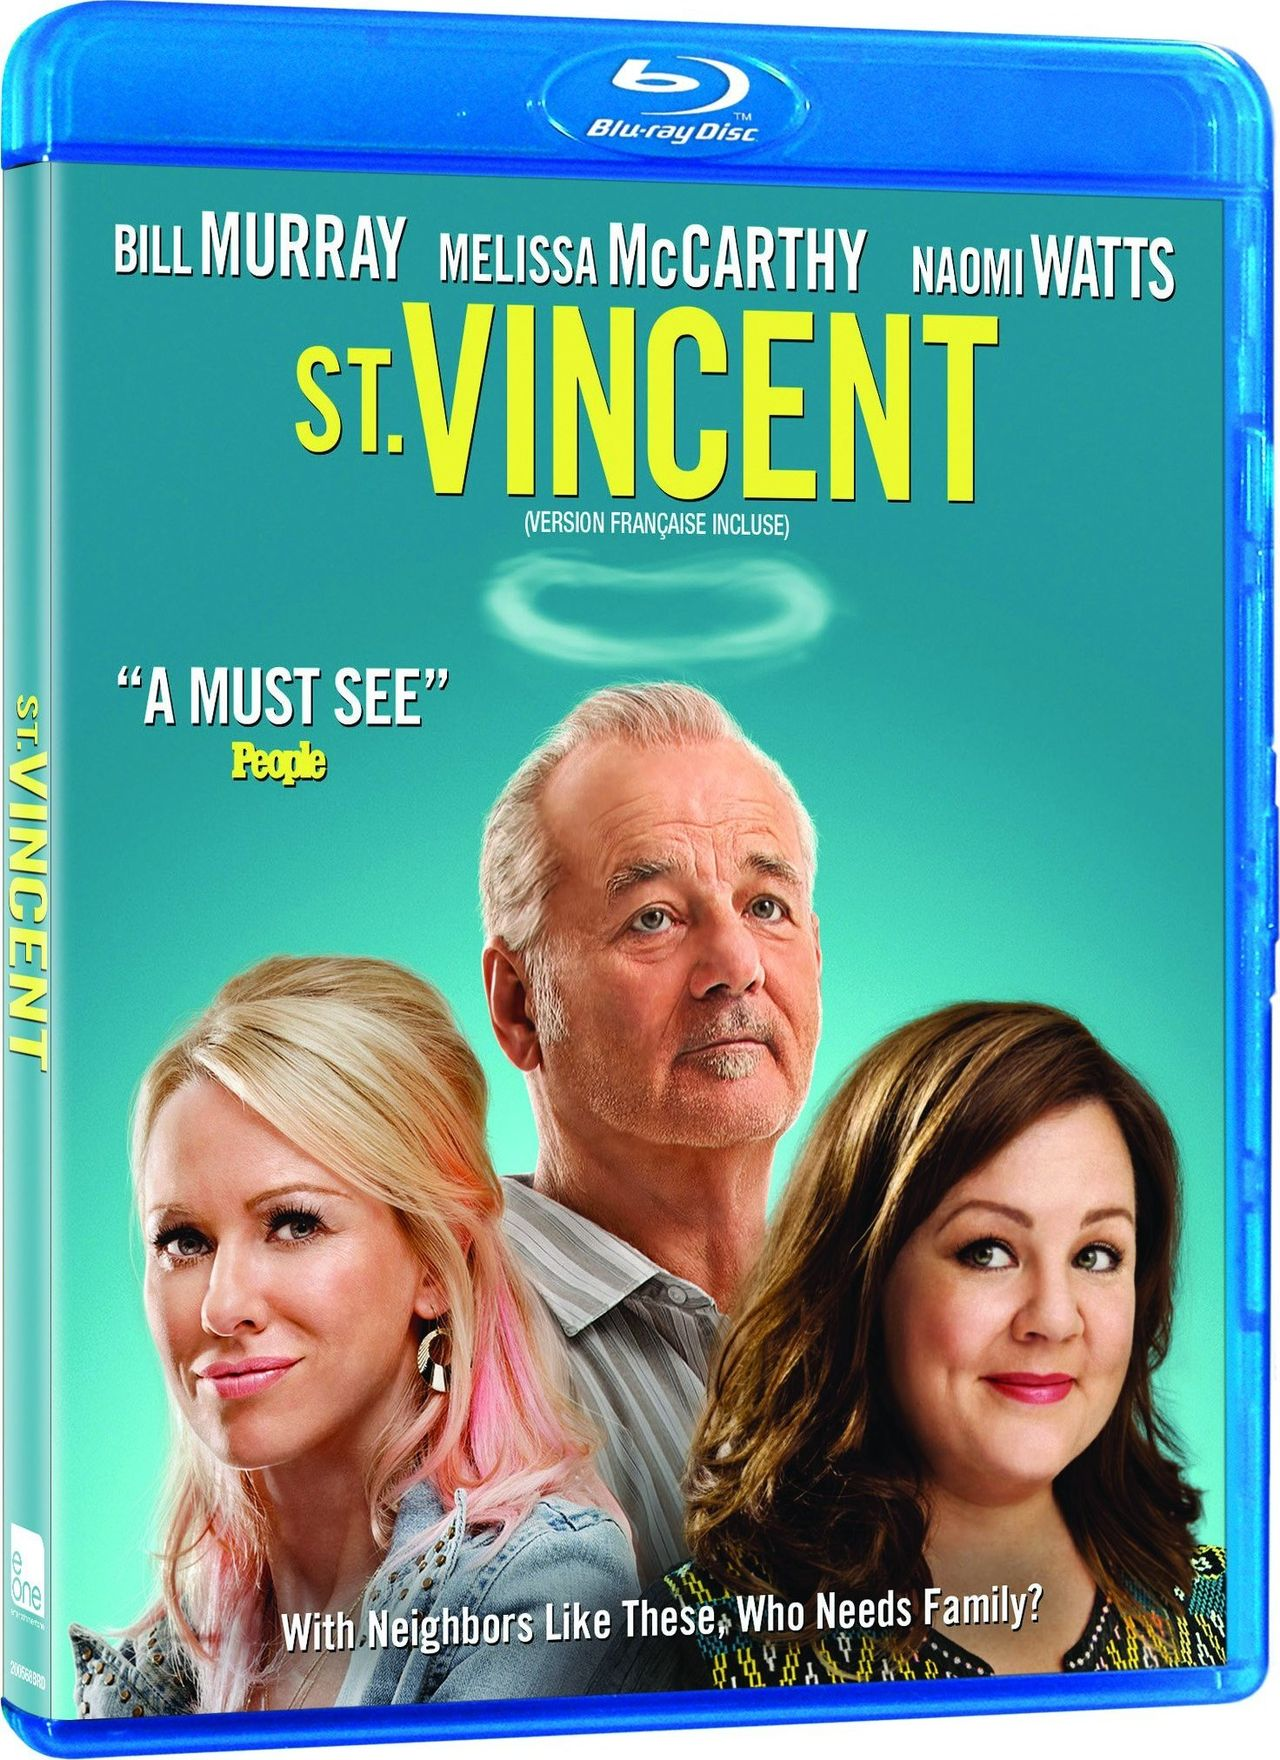 : St Vincent 2014 German dts dl 1080p BluRay x264 Pate